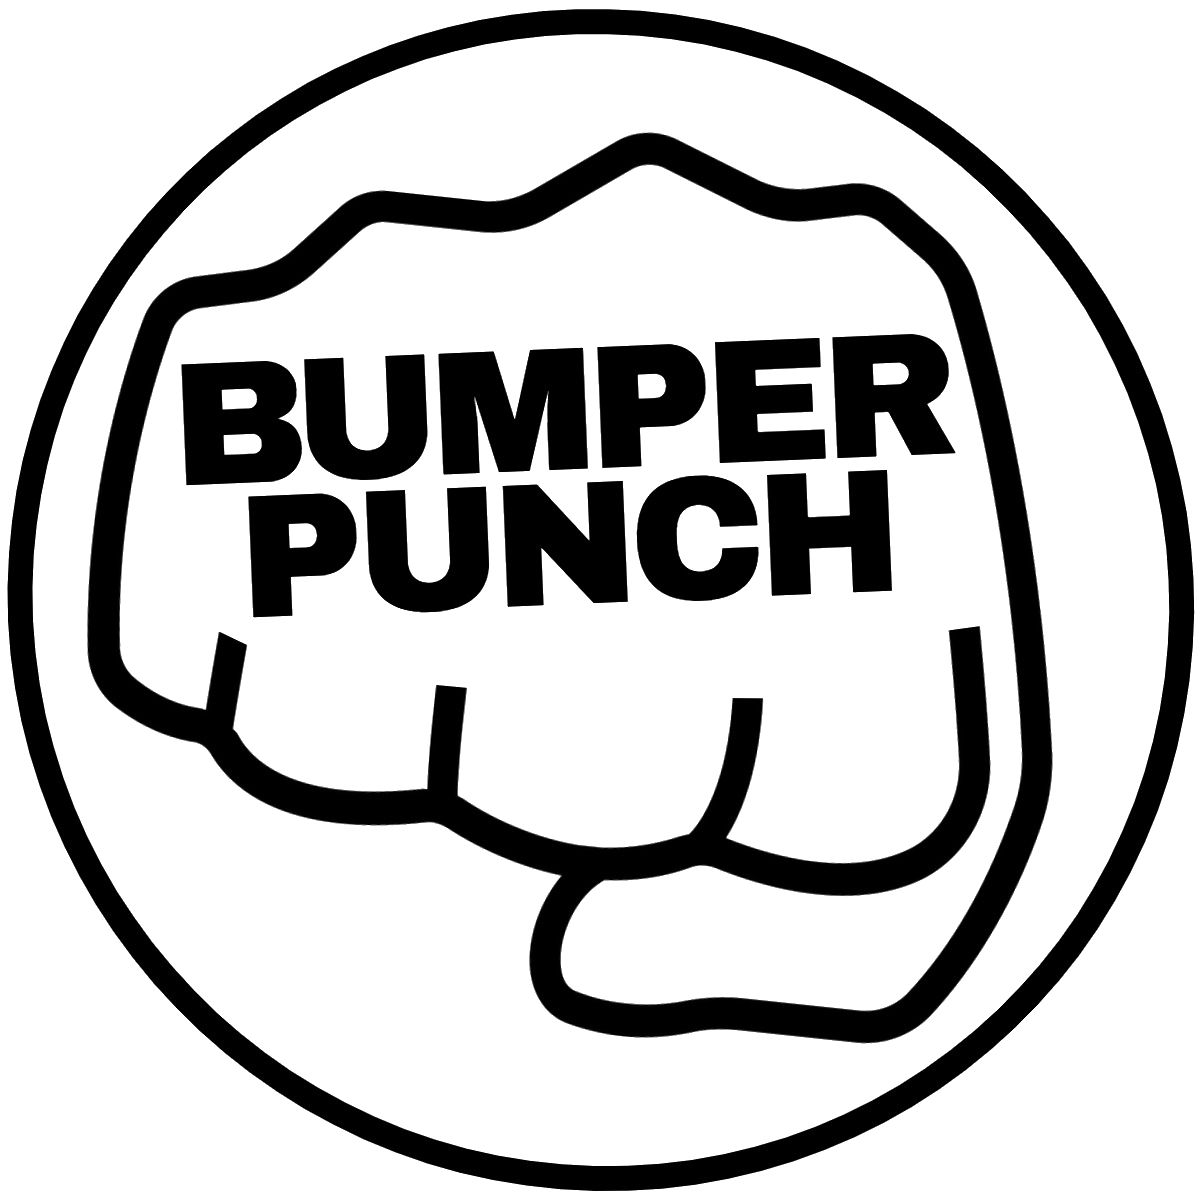 Bumperpunch